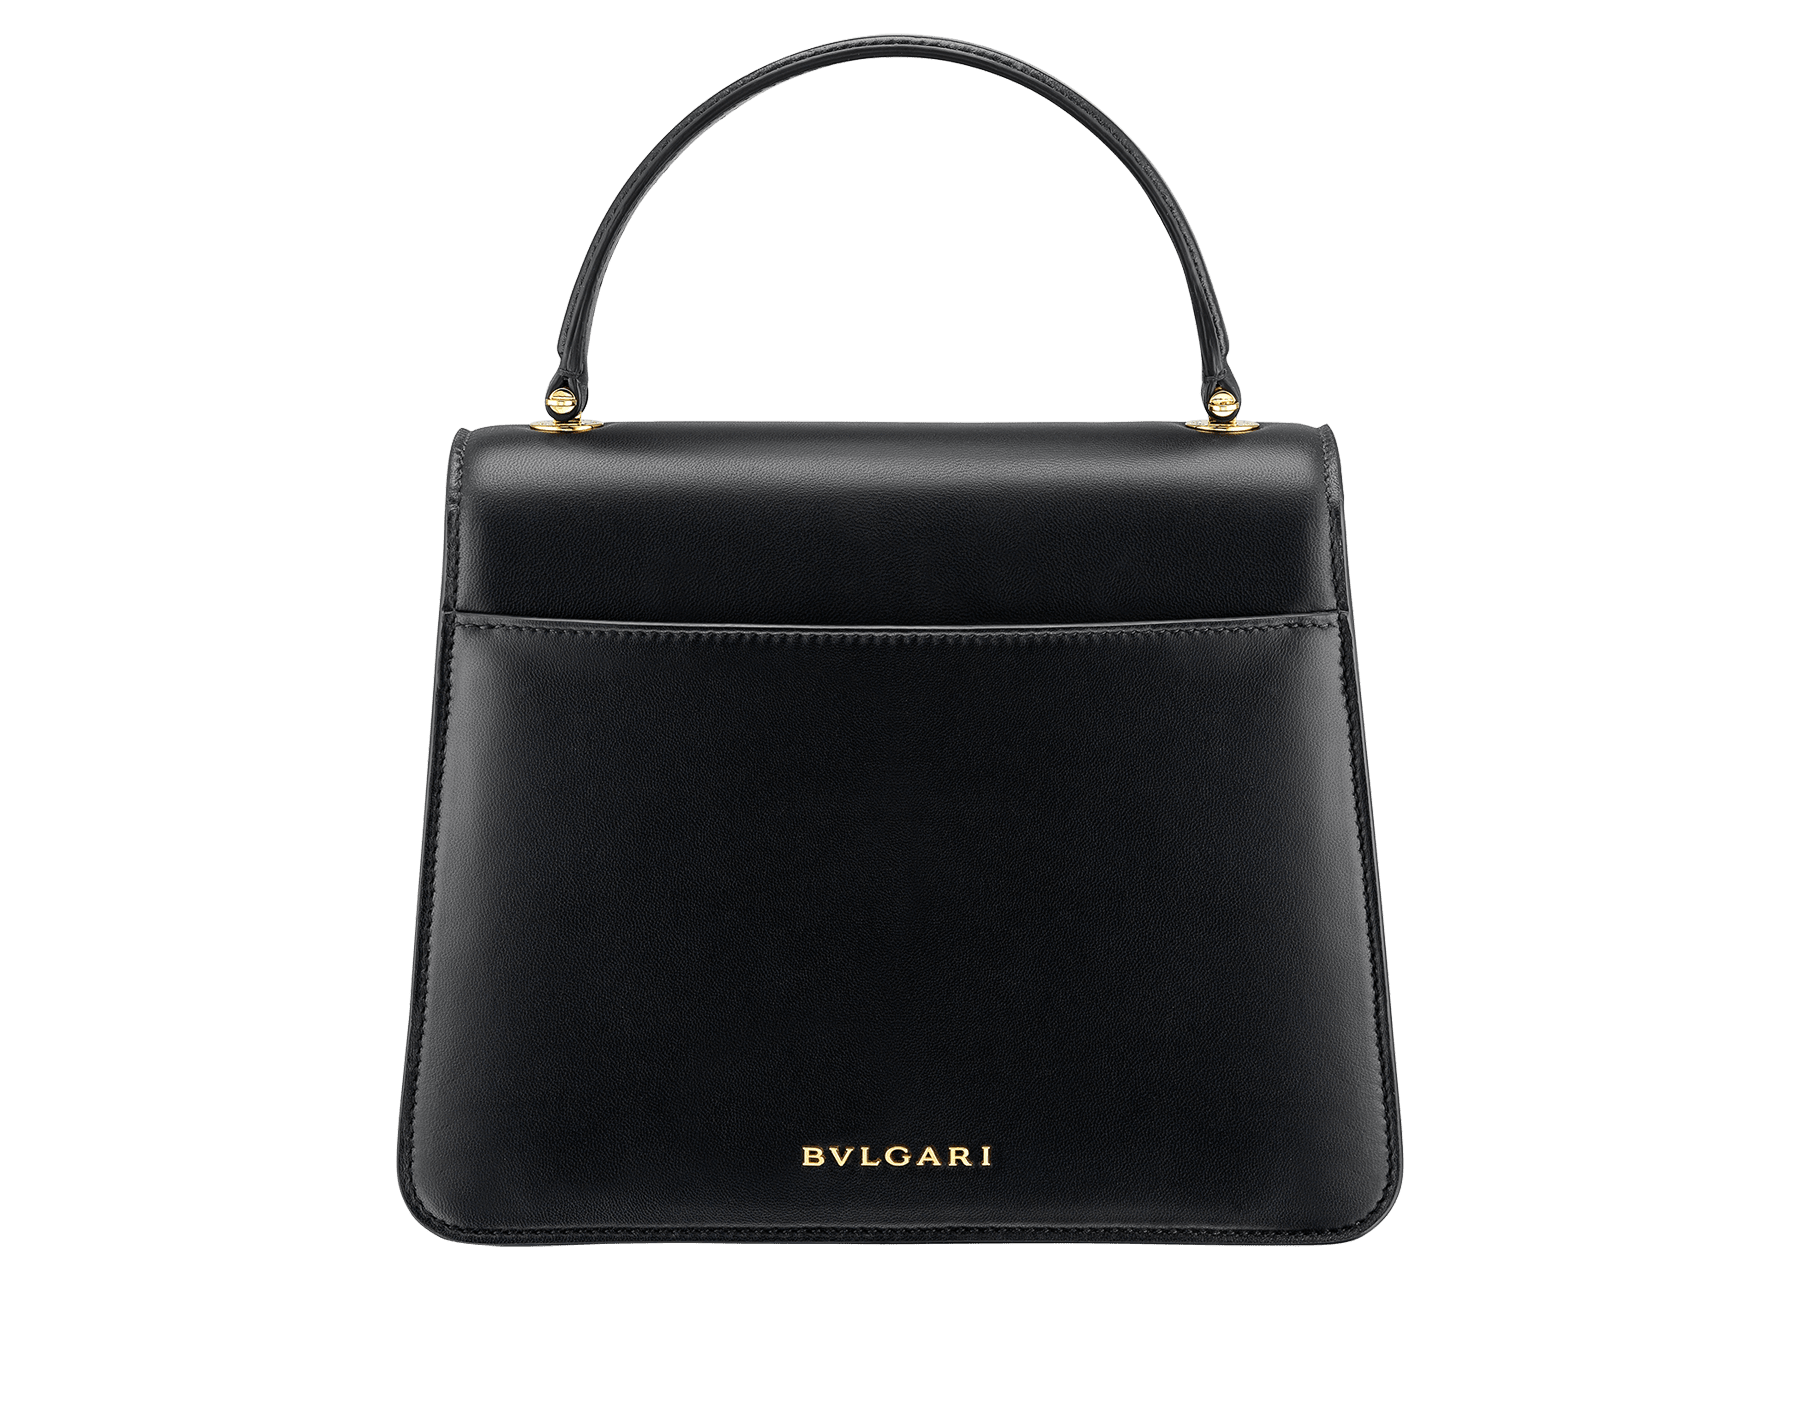 """Mary Katrantzou x Bvlgari"" top handle bag in black nappa leather, with black nappa leather inner lining. New Serpenti head closure in gold-plated brass, finished with seductive crystal eyes. Special Edition. MK-Bejewelled image 3"